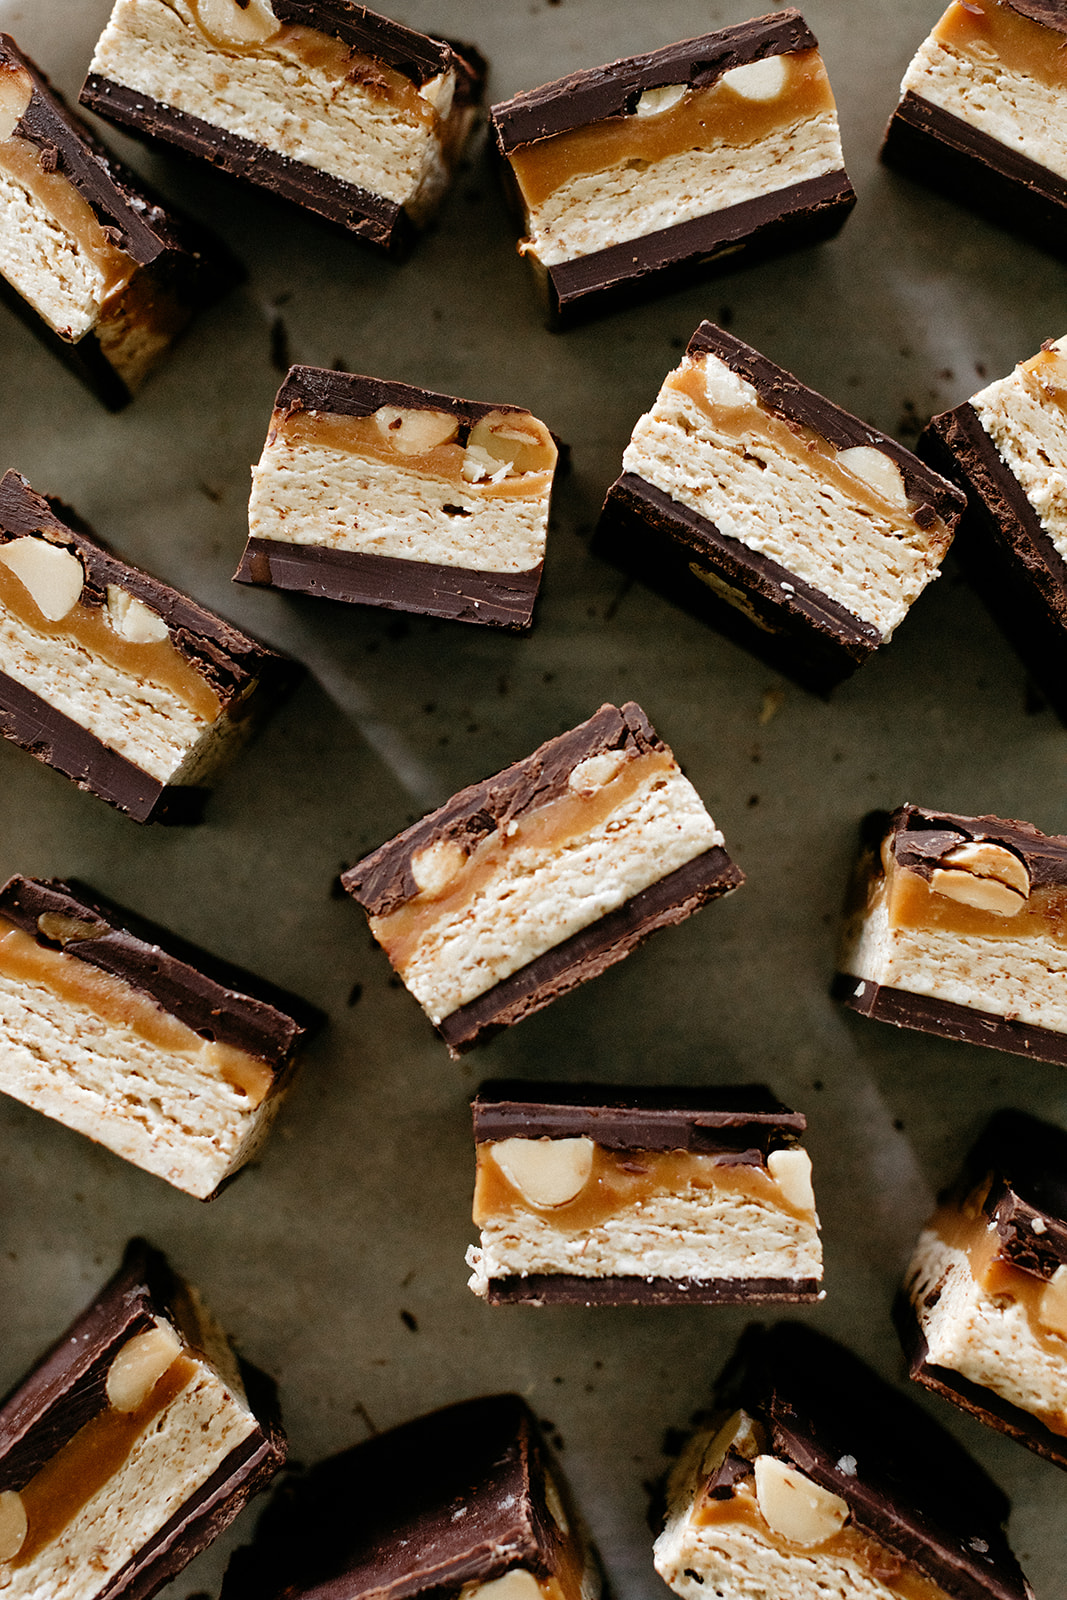 7-19-19-molly-yeh-homemade-snickers-3.jpg